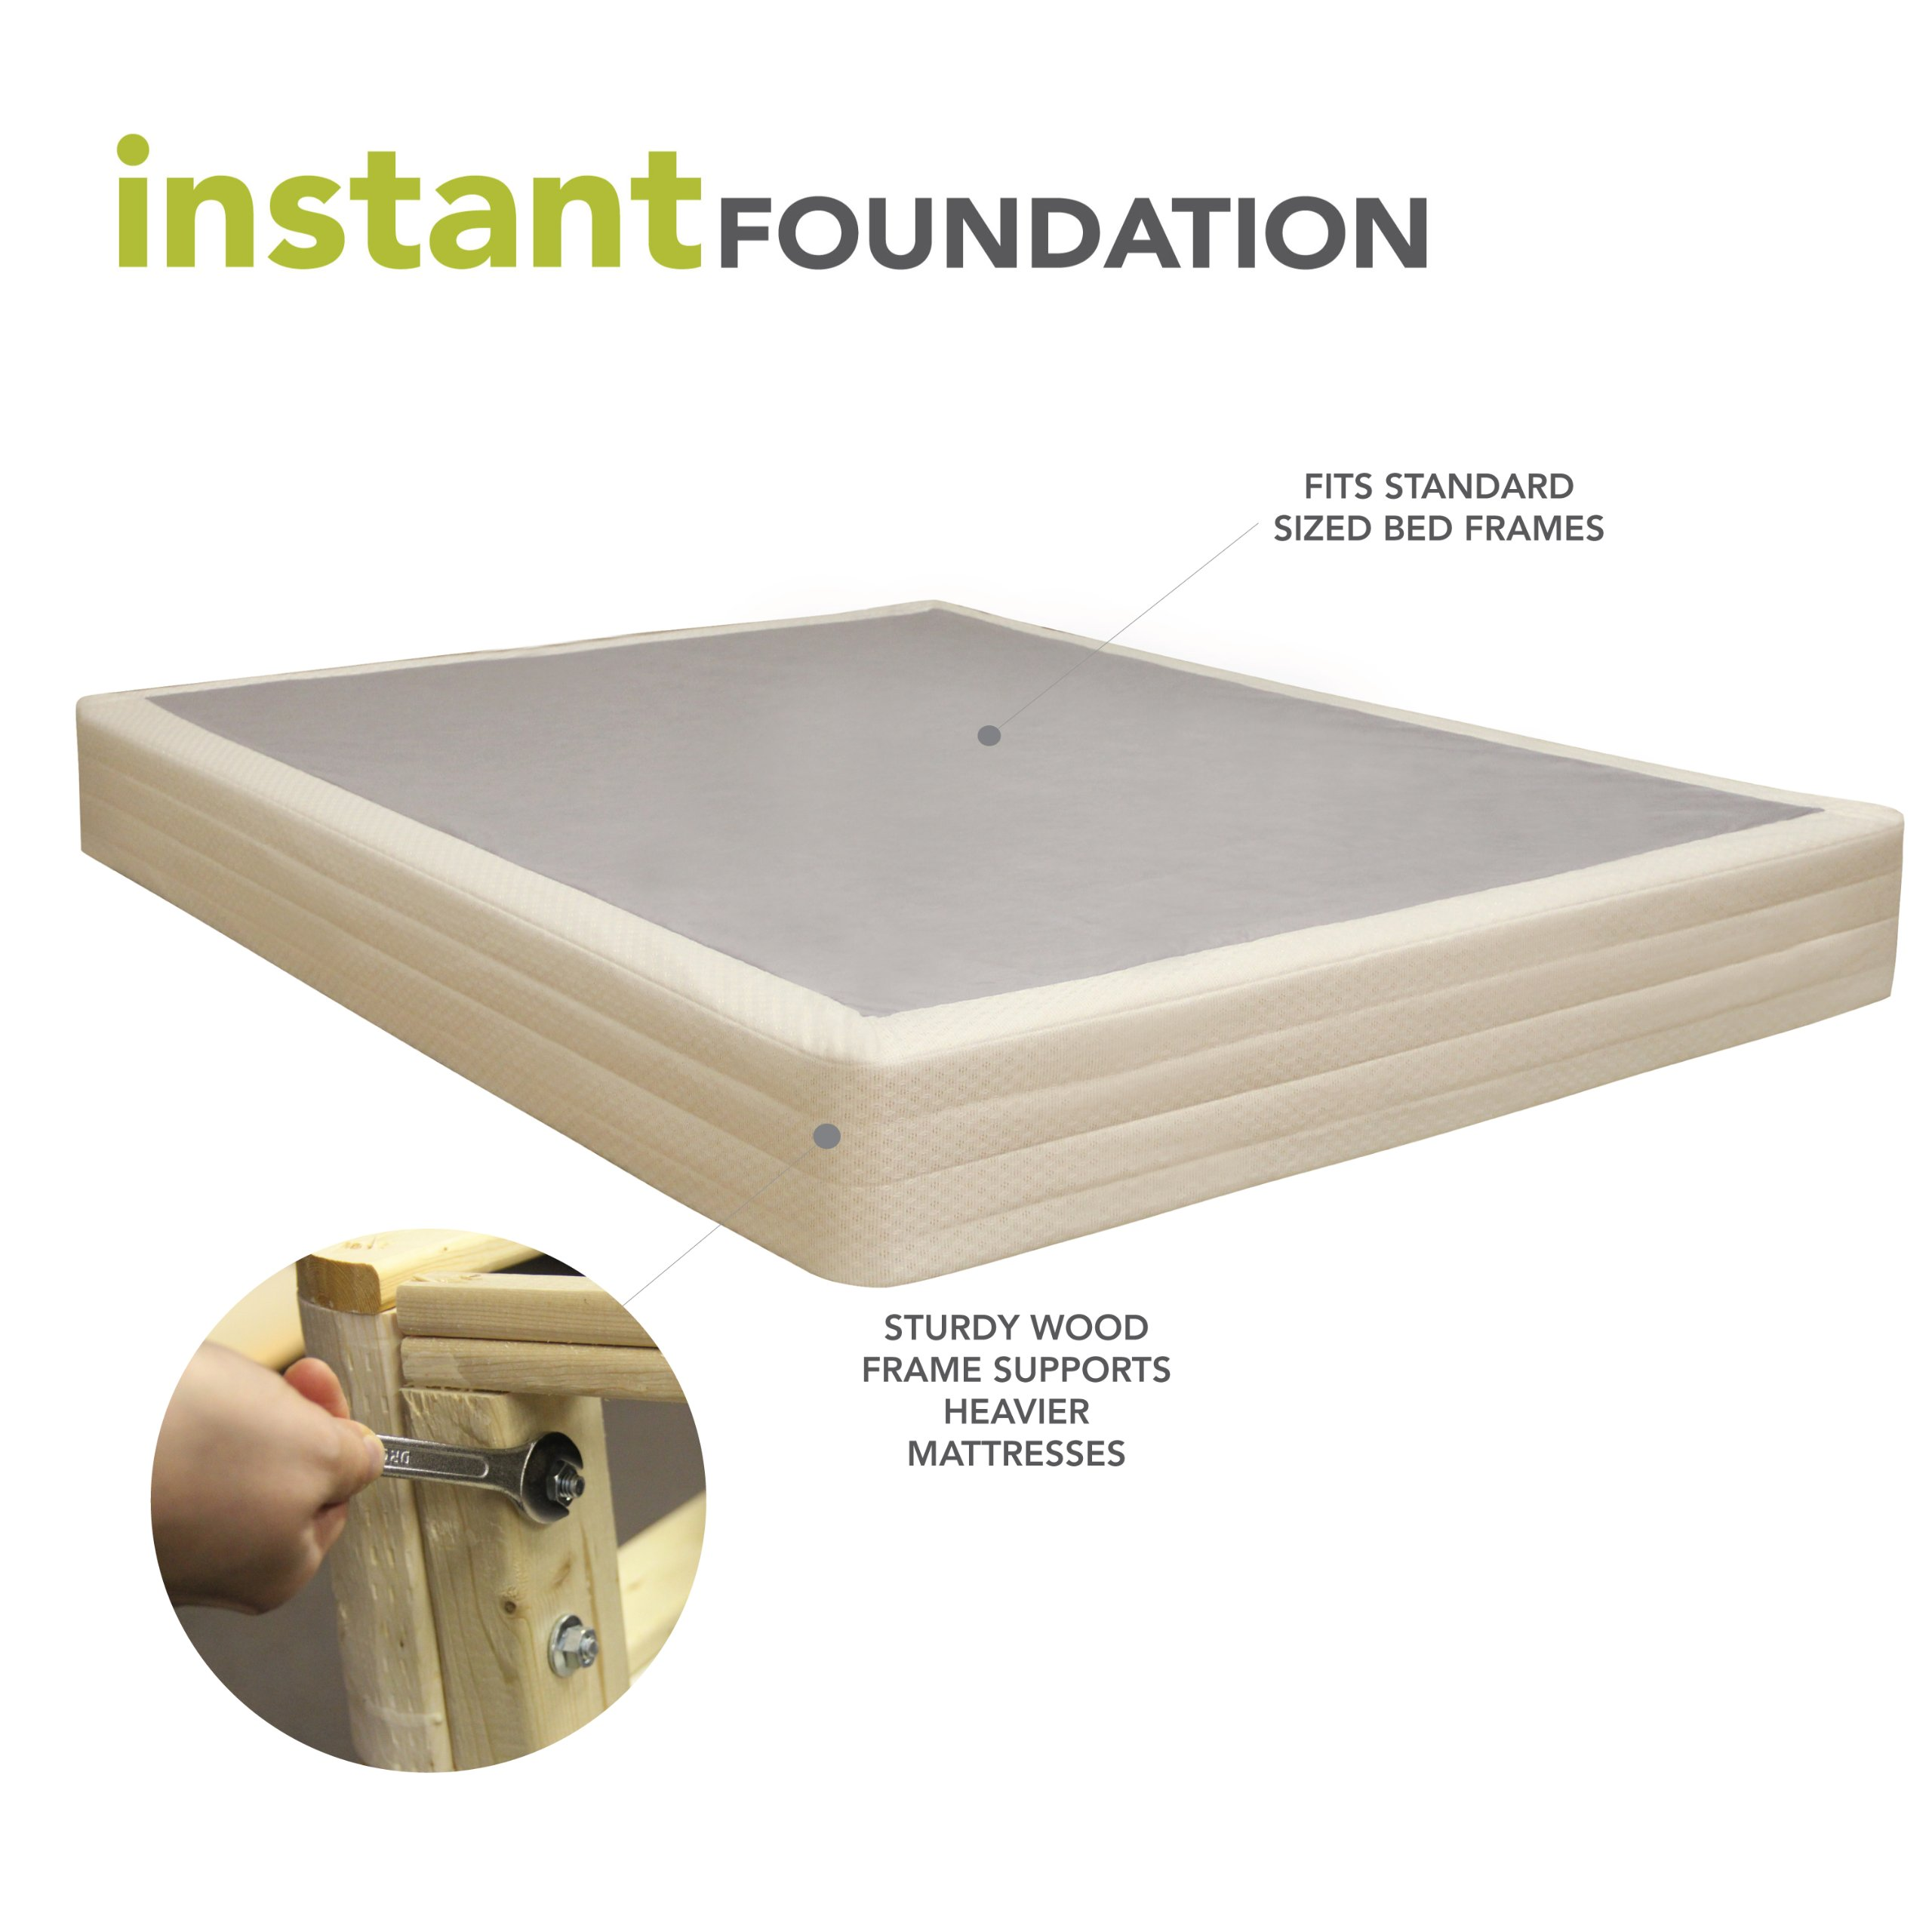 Classic Brands Instant Foundation High Profile 8-Inch Box-Spring Replacement, Full by Classic Brands (Image #8)